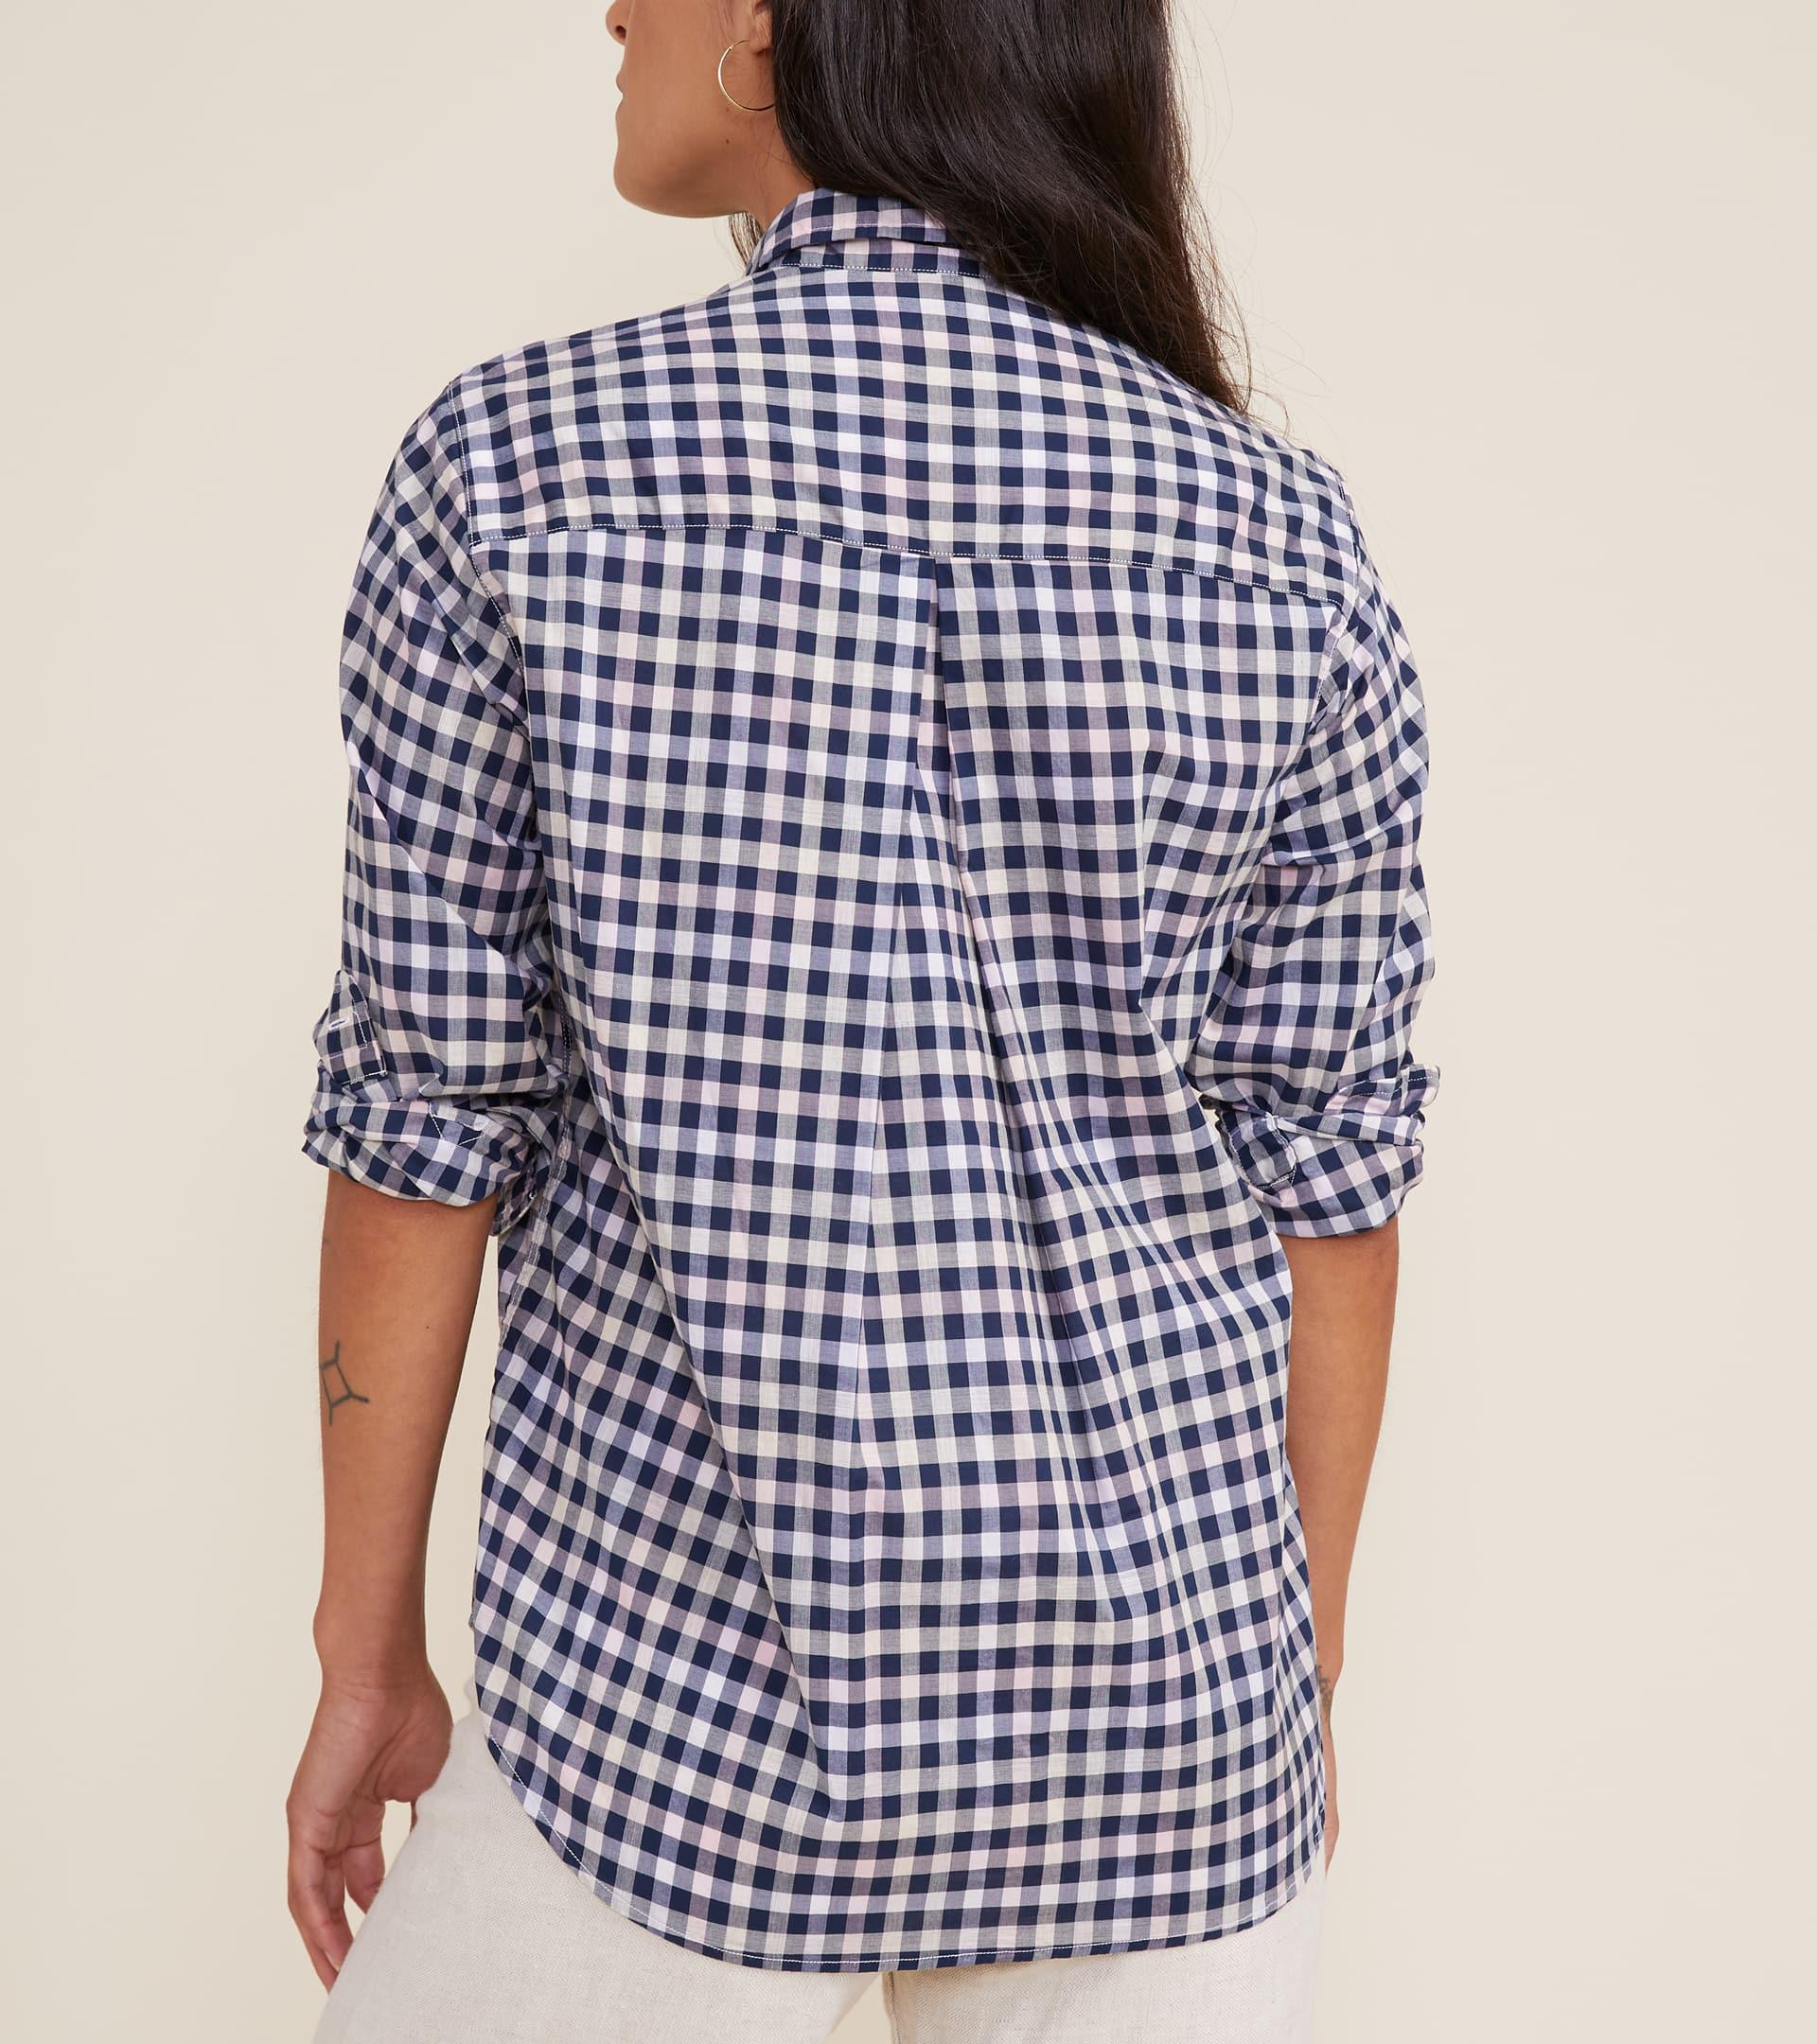 The Hero Button-Up Shirt in Multi Check, Cool Cotton Sale 2